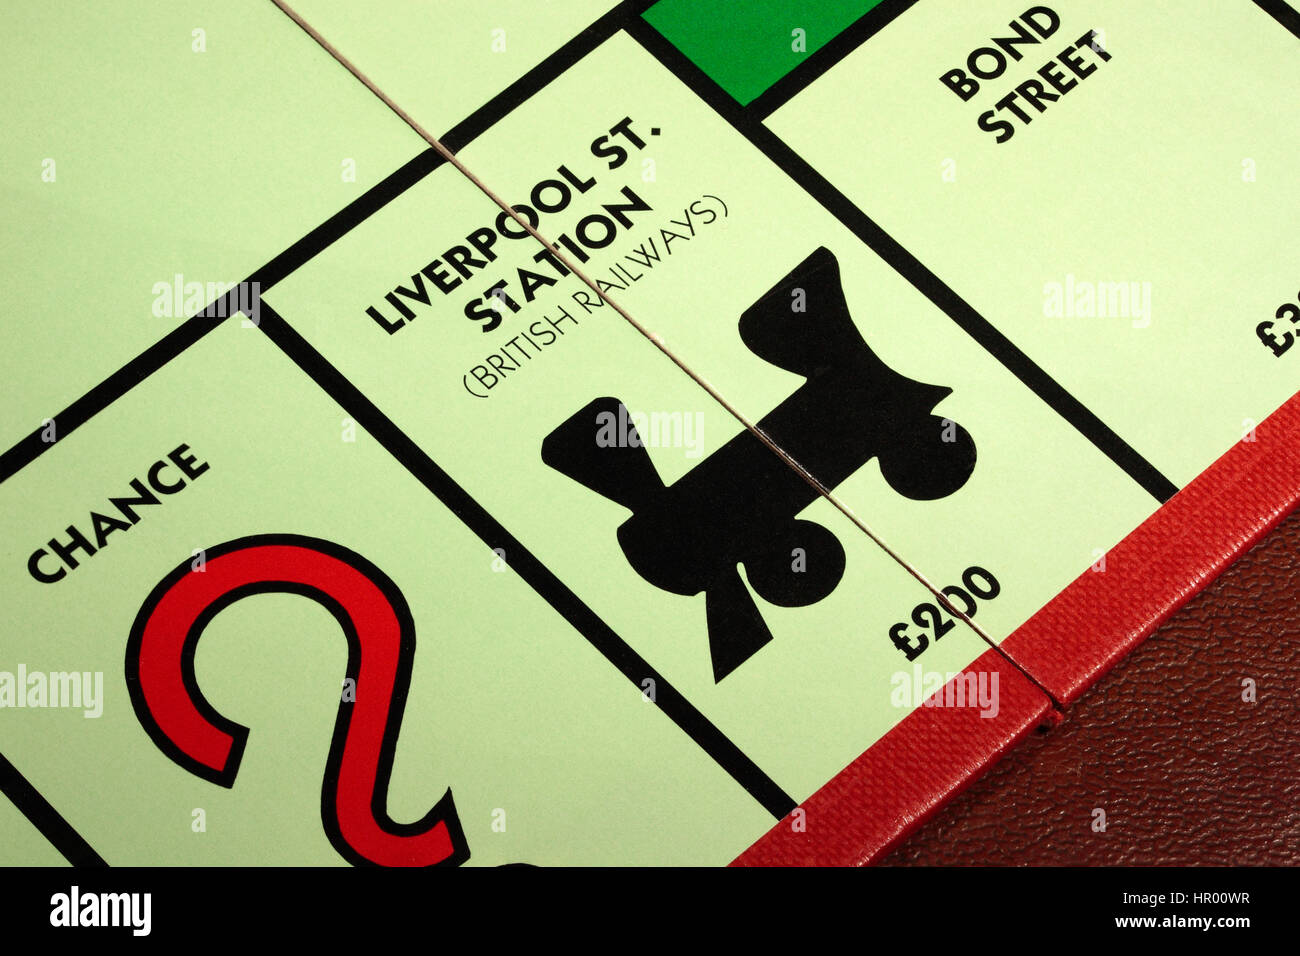 Monopoly board game Liverpool St. Station British Railways £200 with Chance to the left and Bond Street to - Stock Image